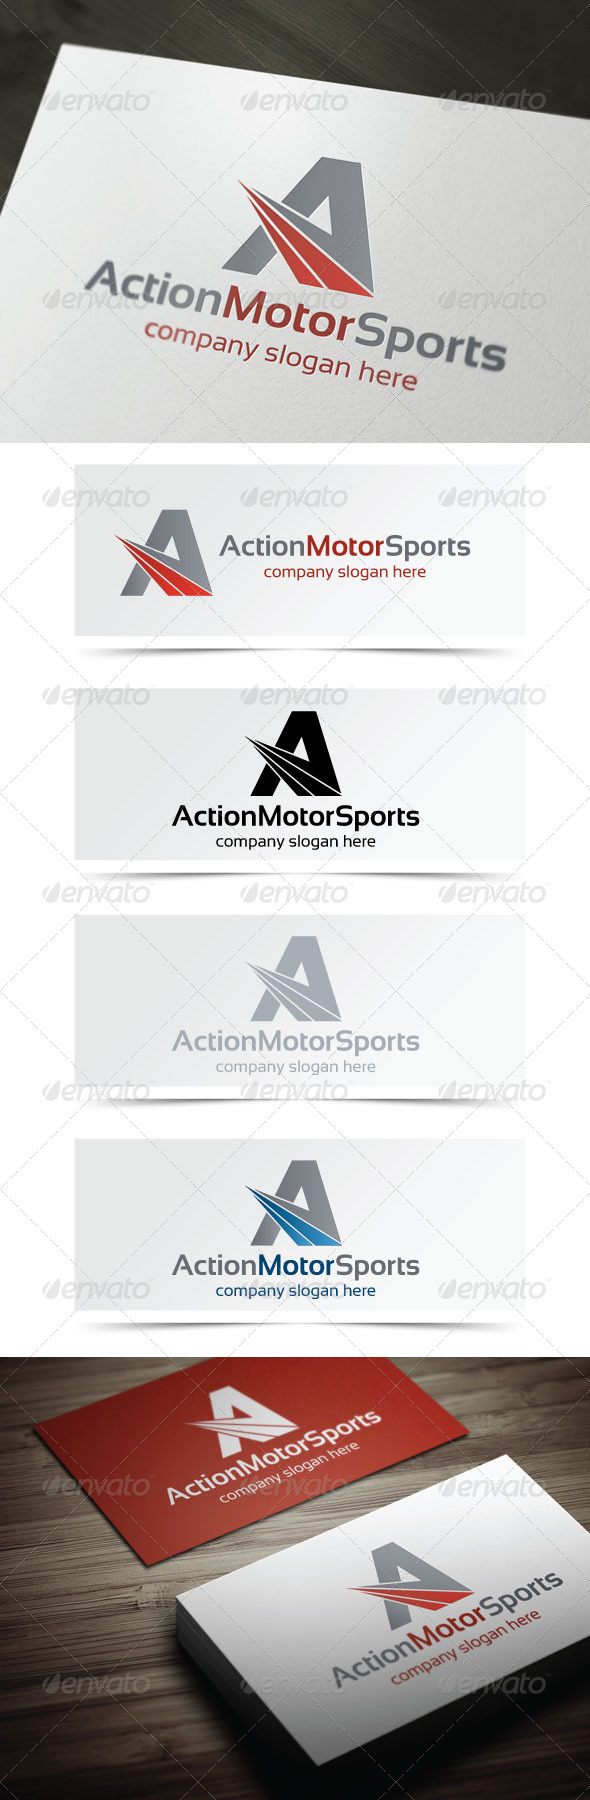 GraphicRiver Action Motor Sports 5054682